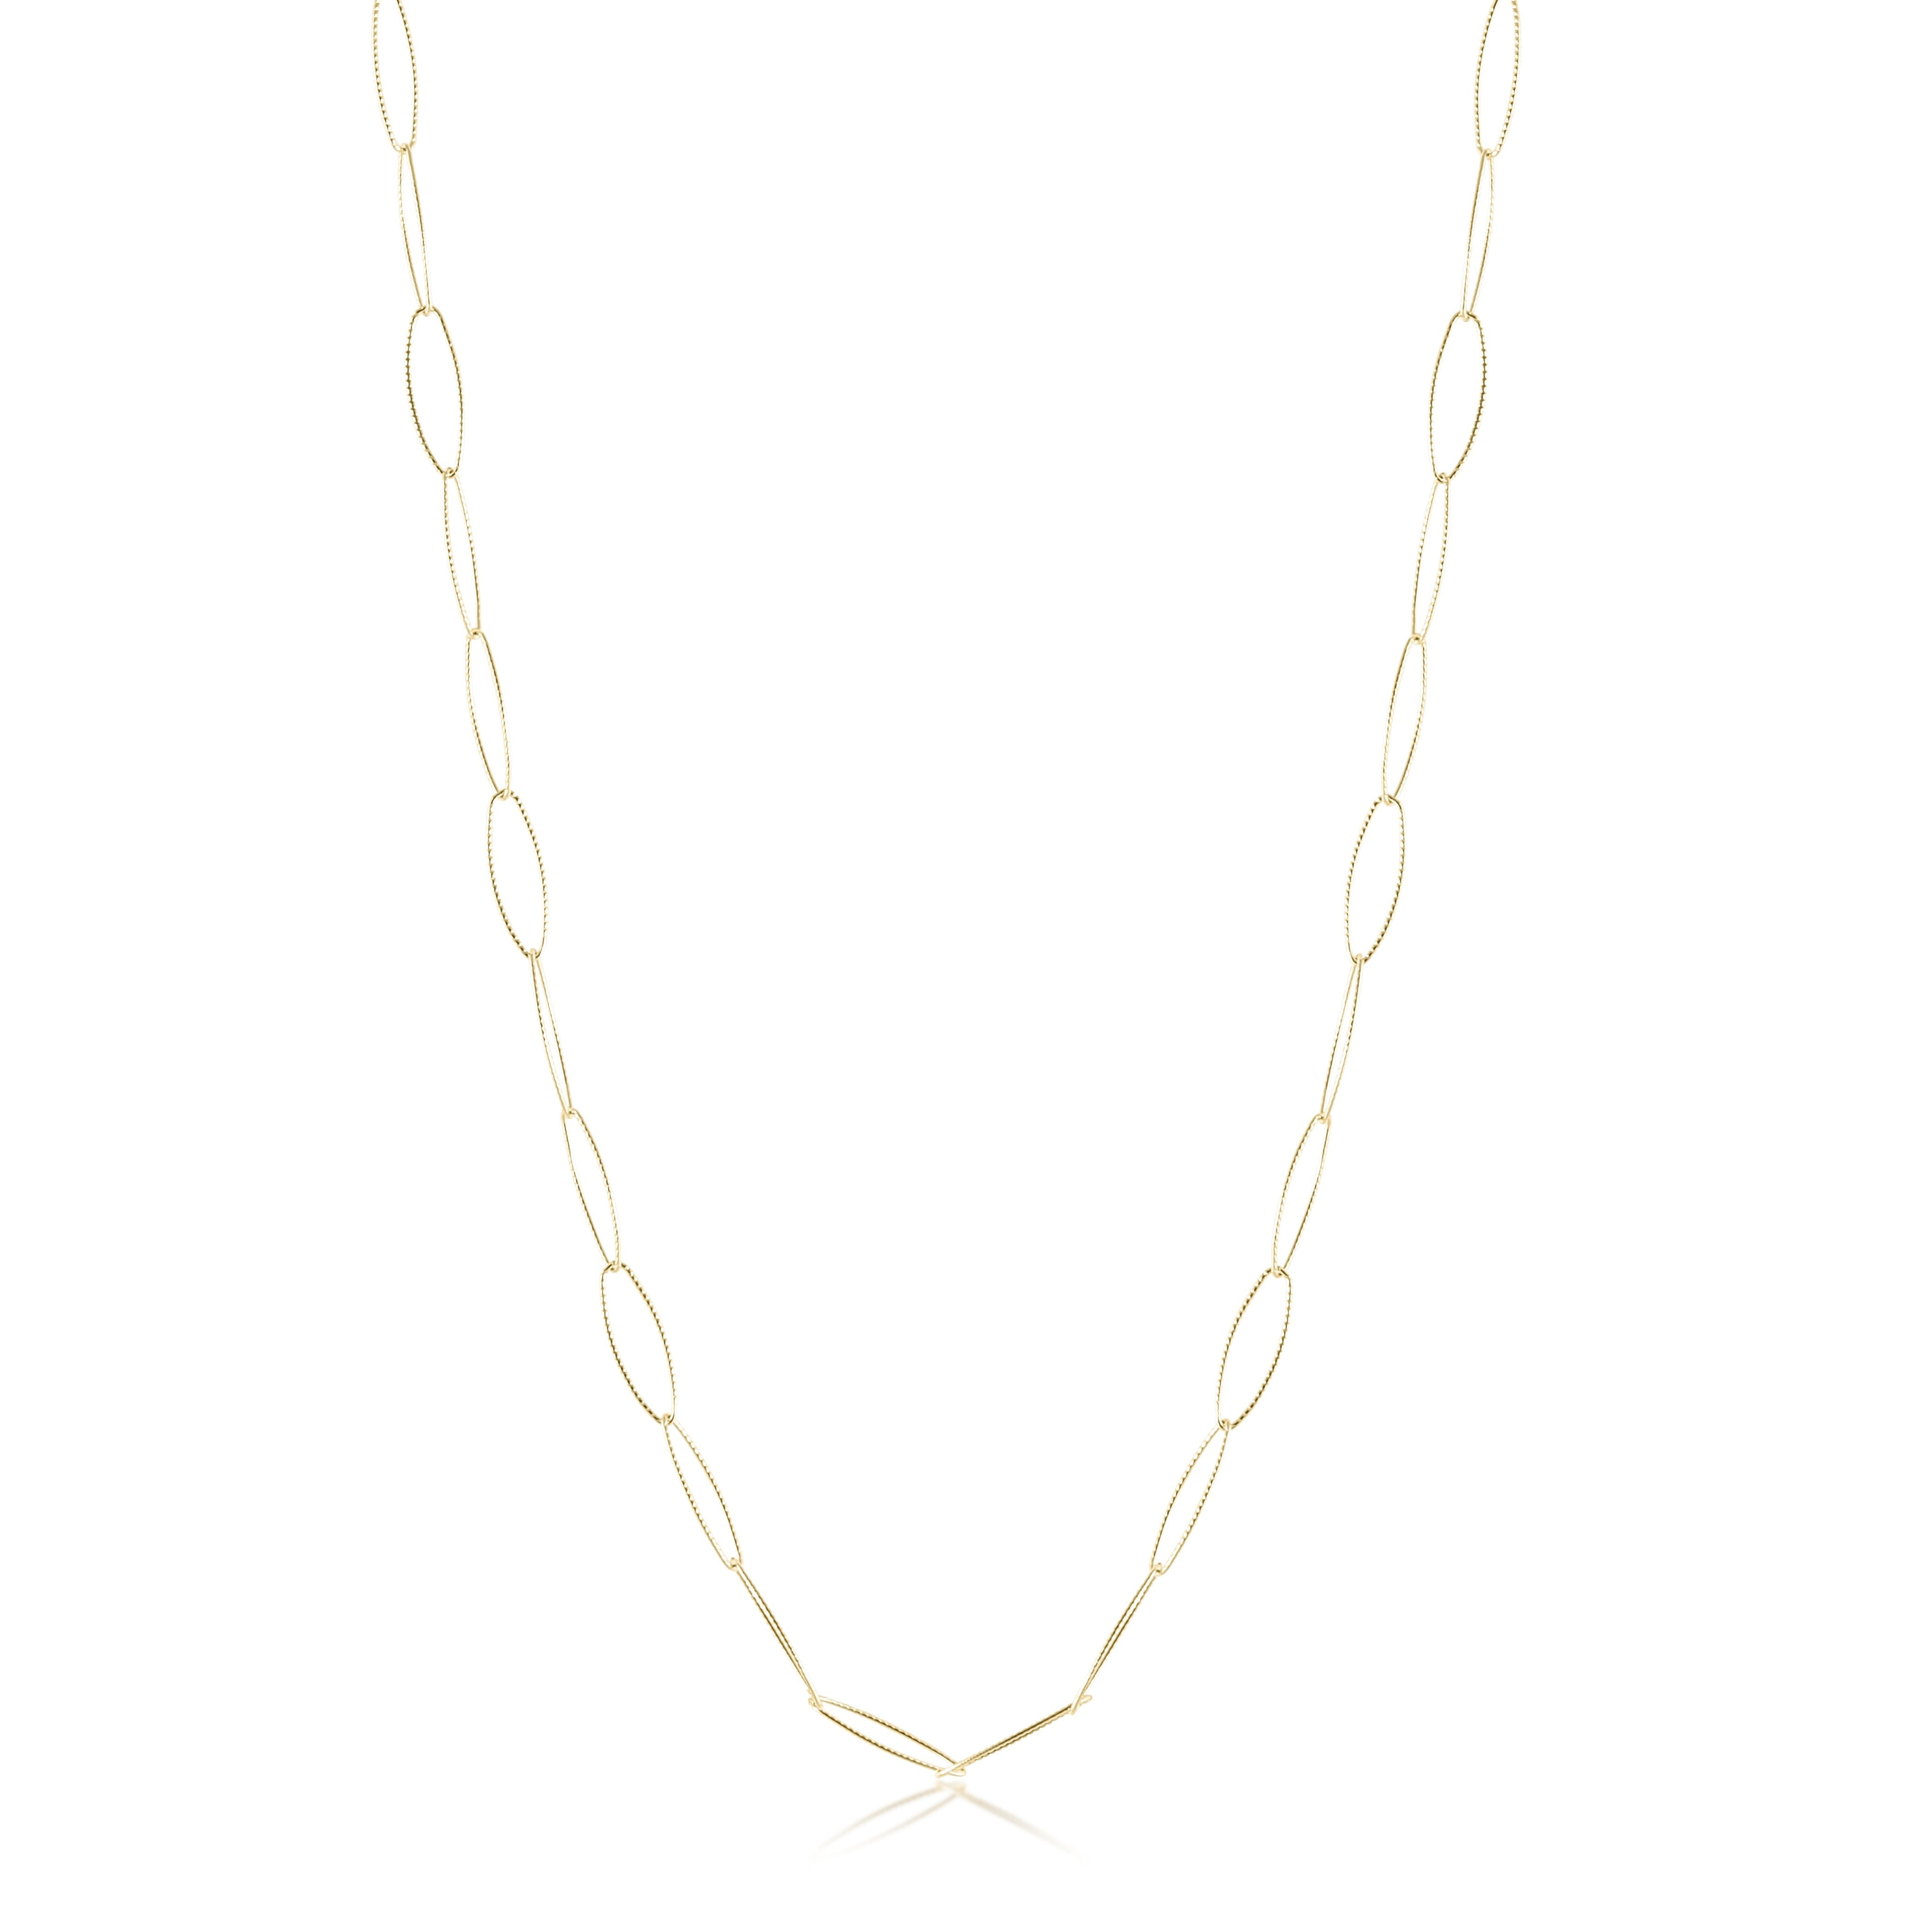 "41"" Necklace Classic Chain - Gold - Textured"